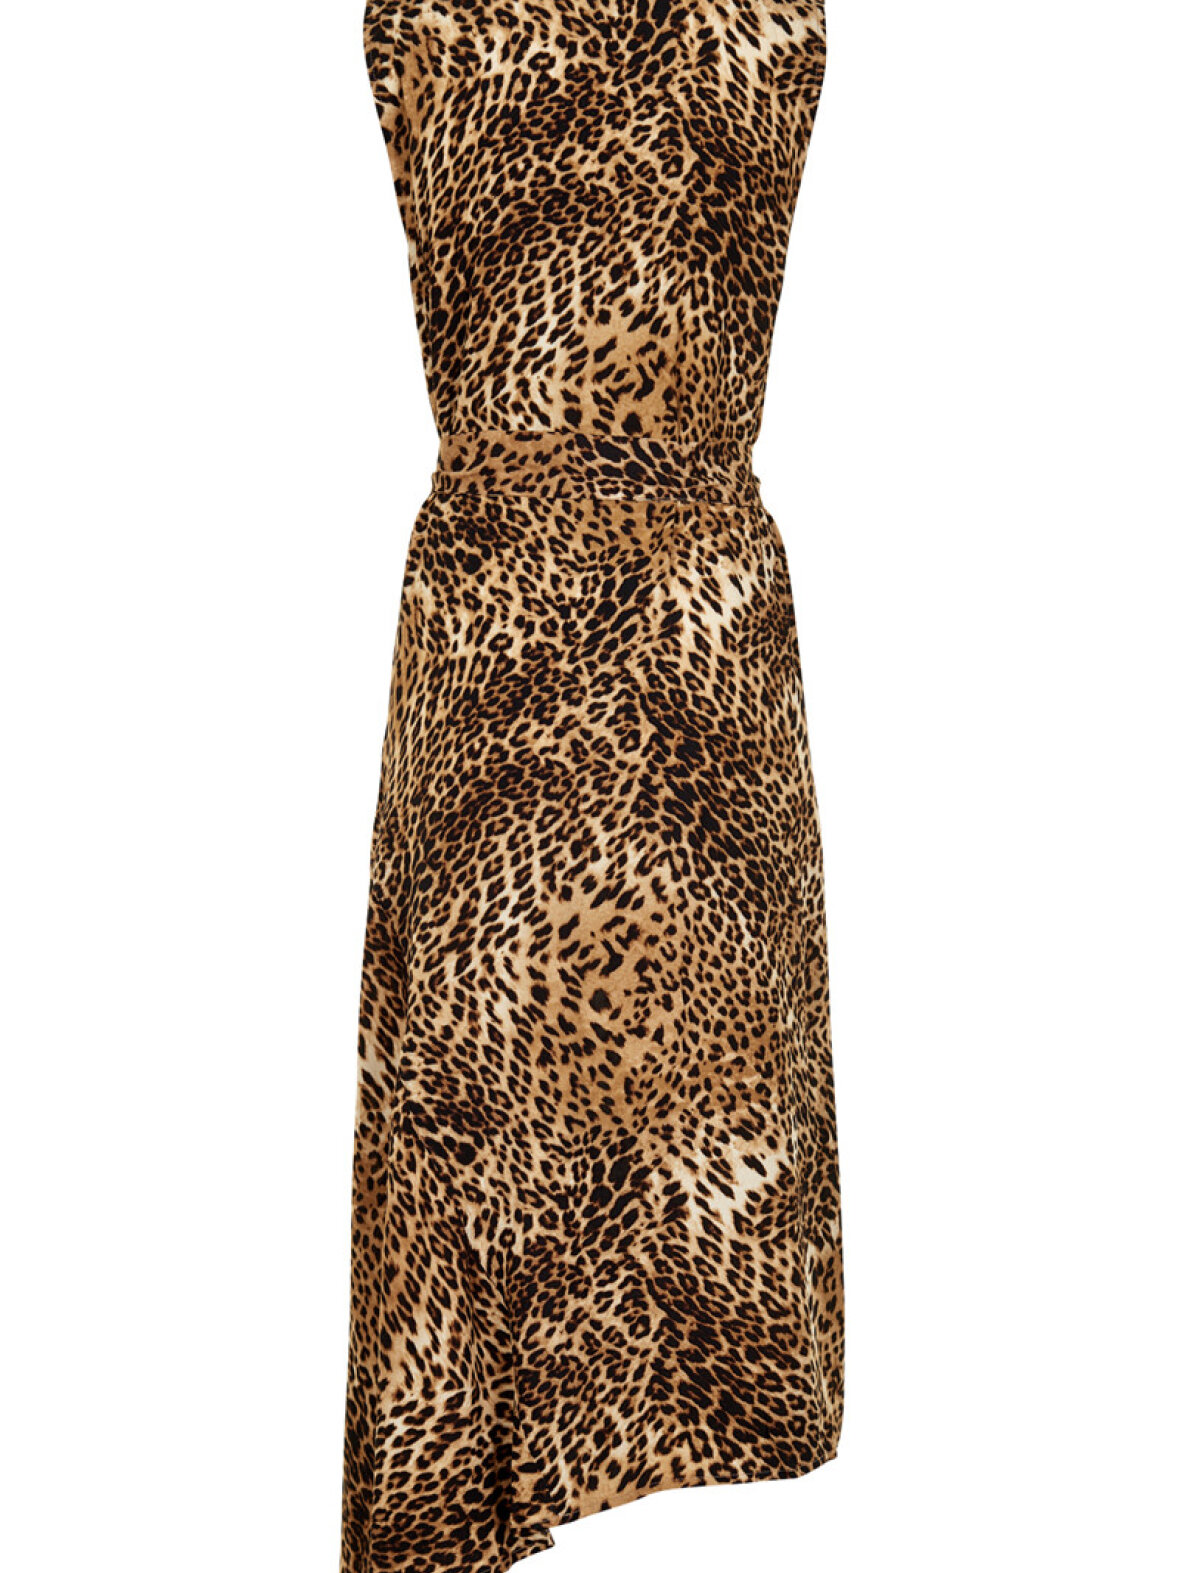 Long Christi Gestuz A'poke Leopard Dress qWP188En